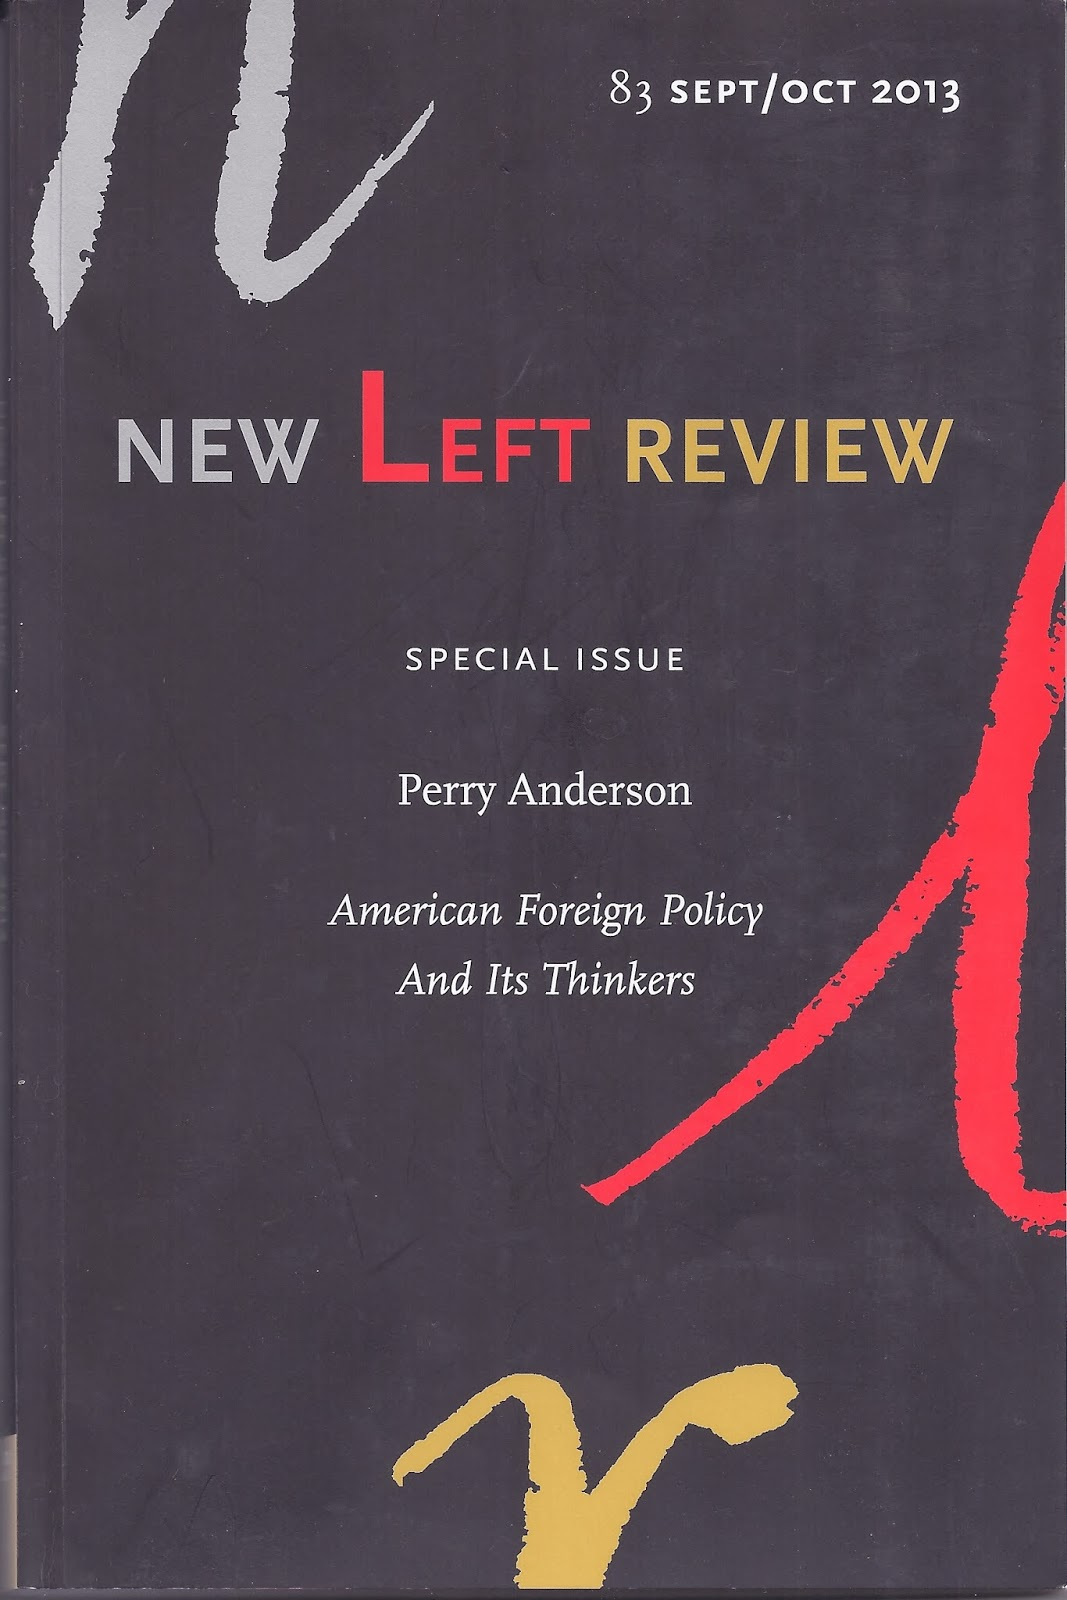 reading this book cover to cover 2013 review perry anderson american foreign policy and its thinkers